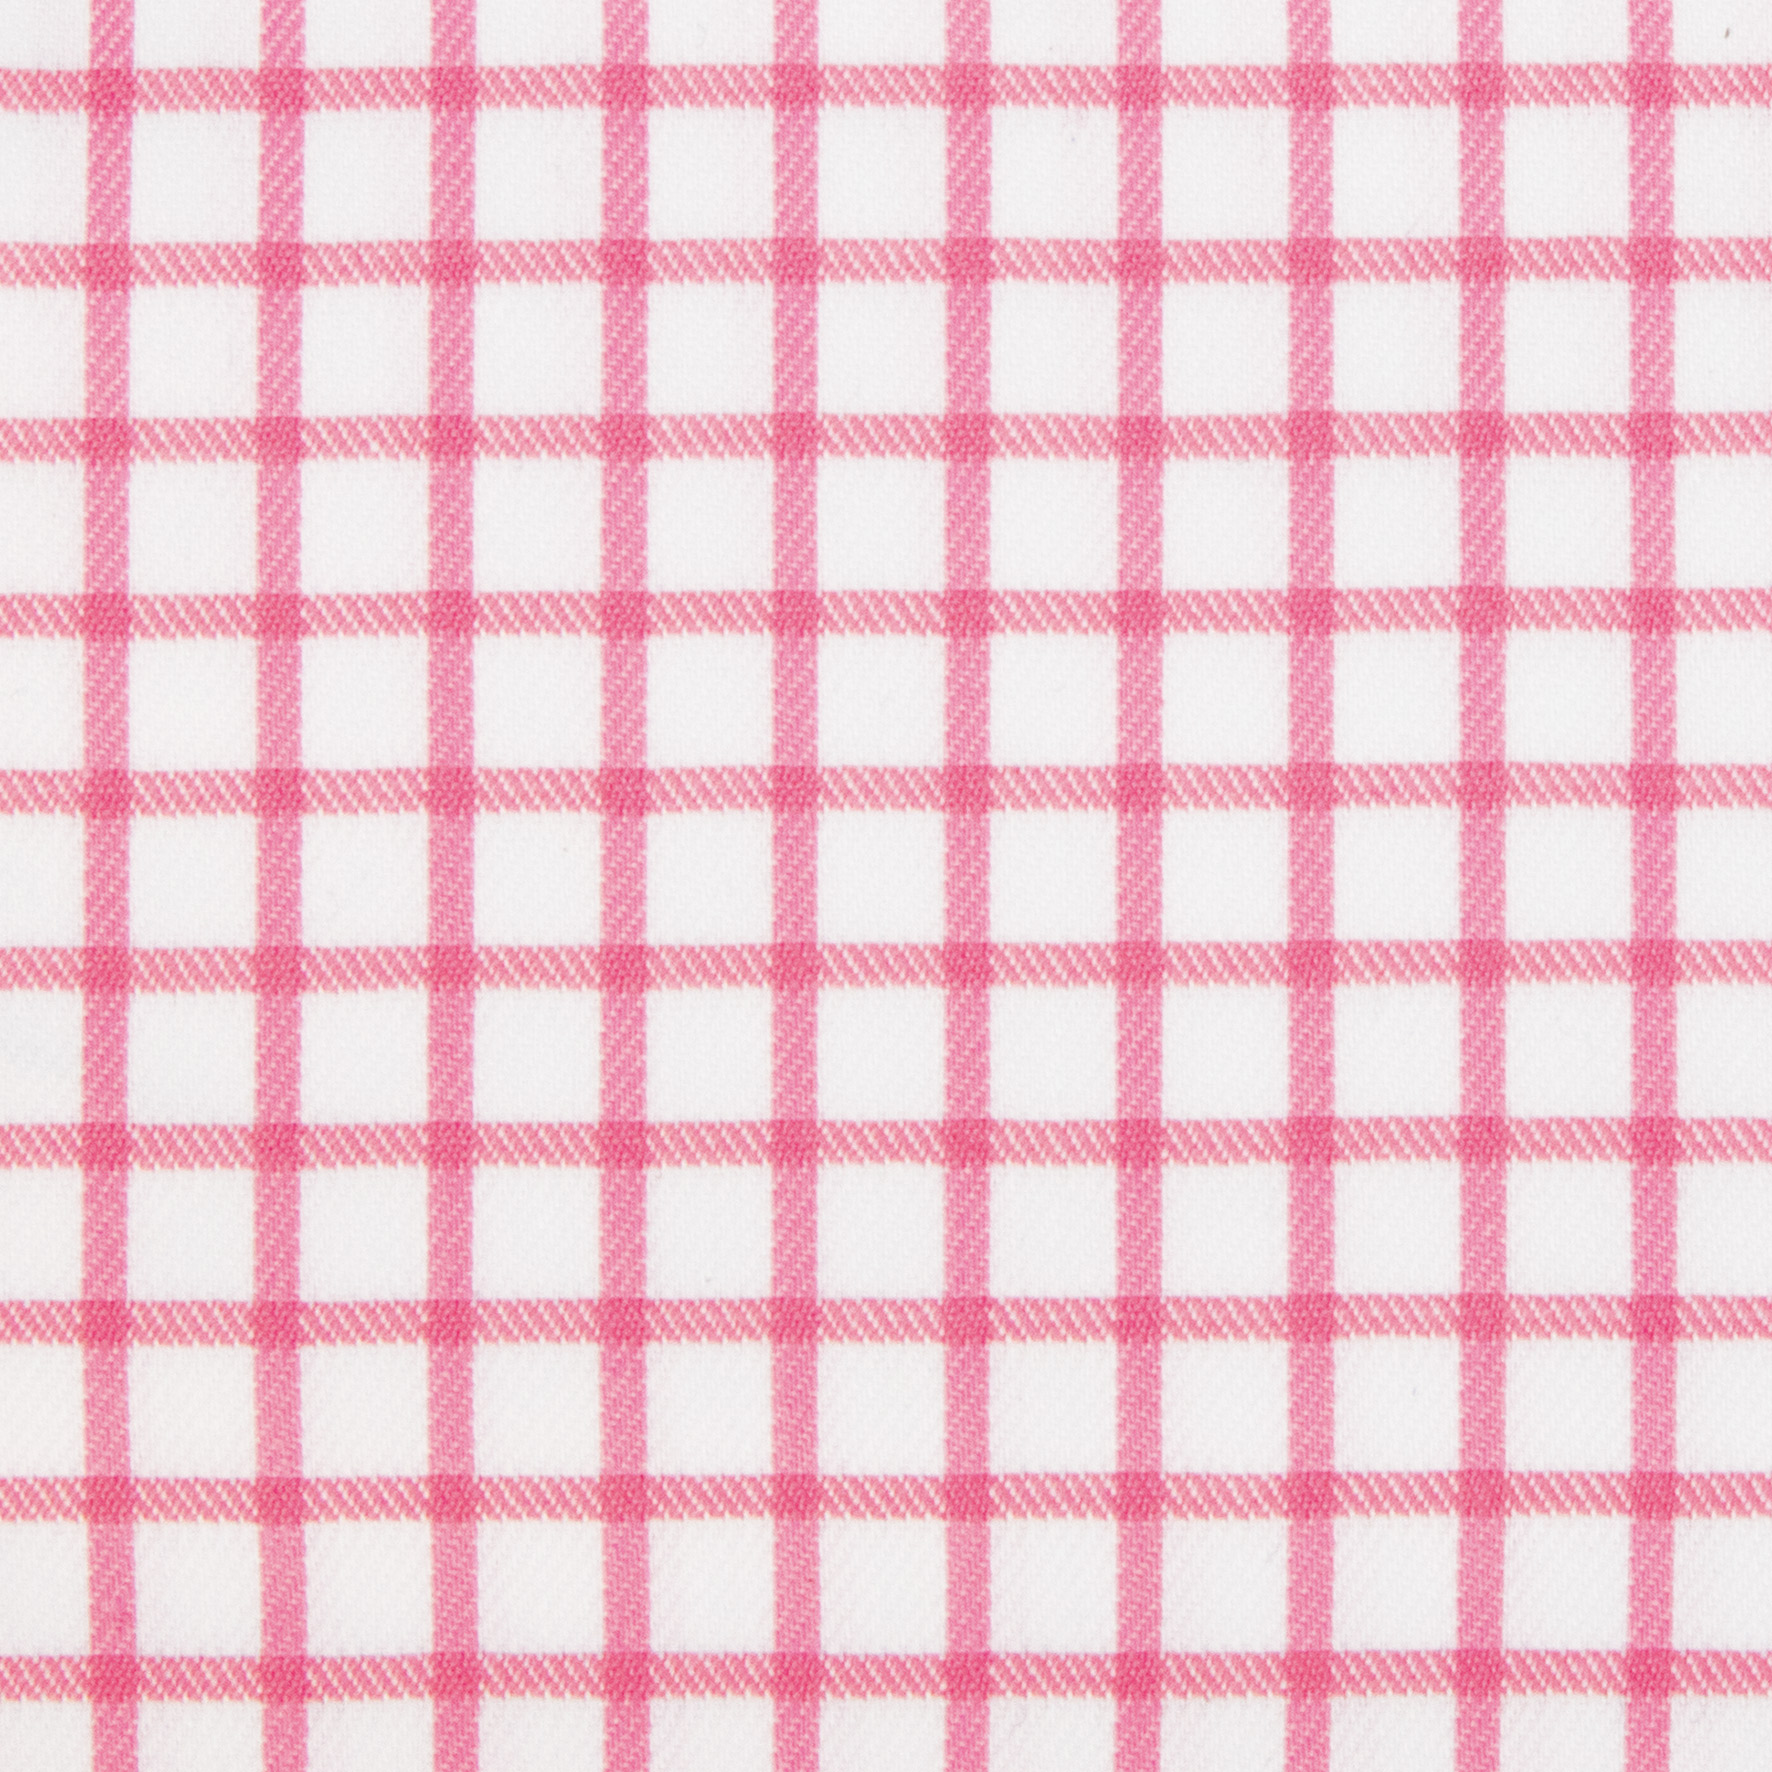 Buy tailor made shirts online - Antonio Range - Pink Check